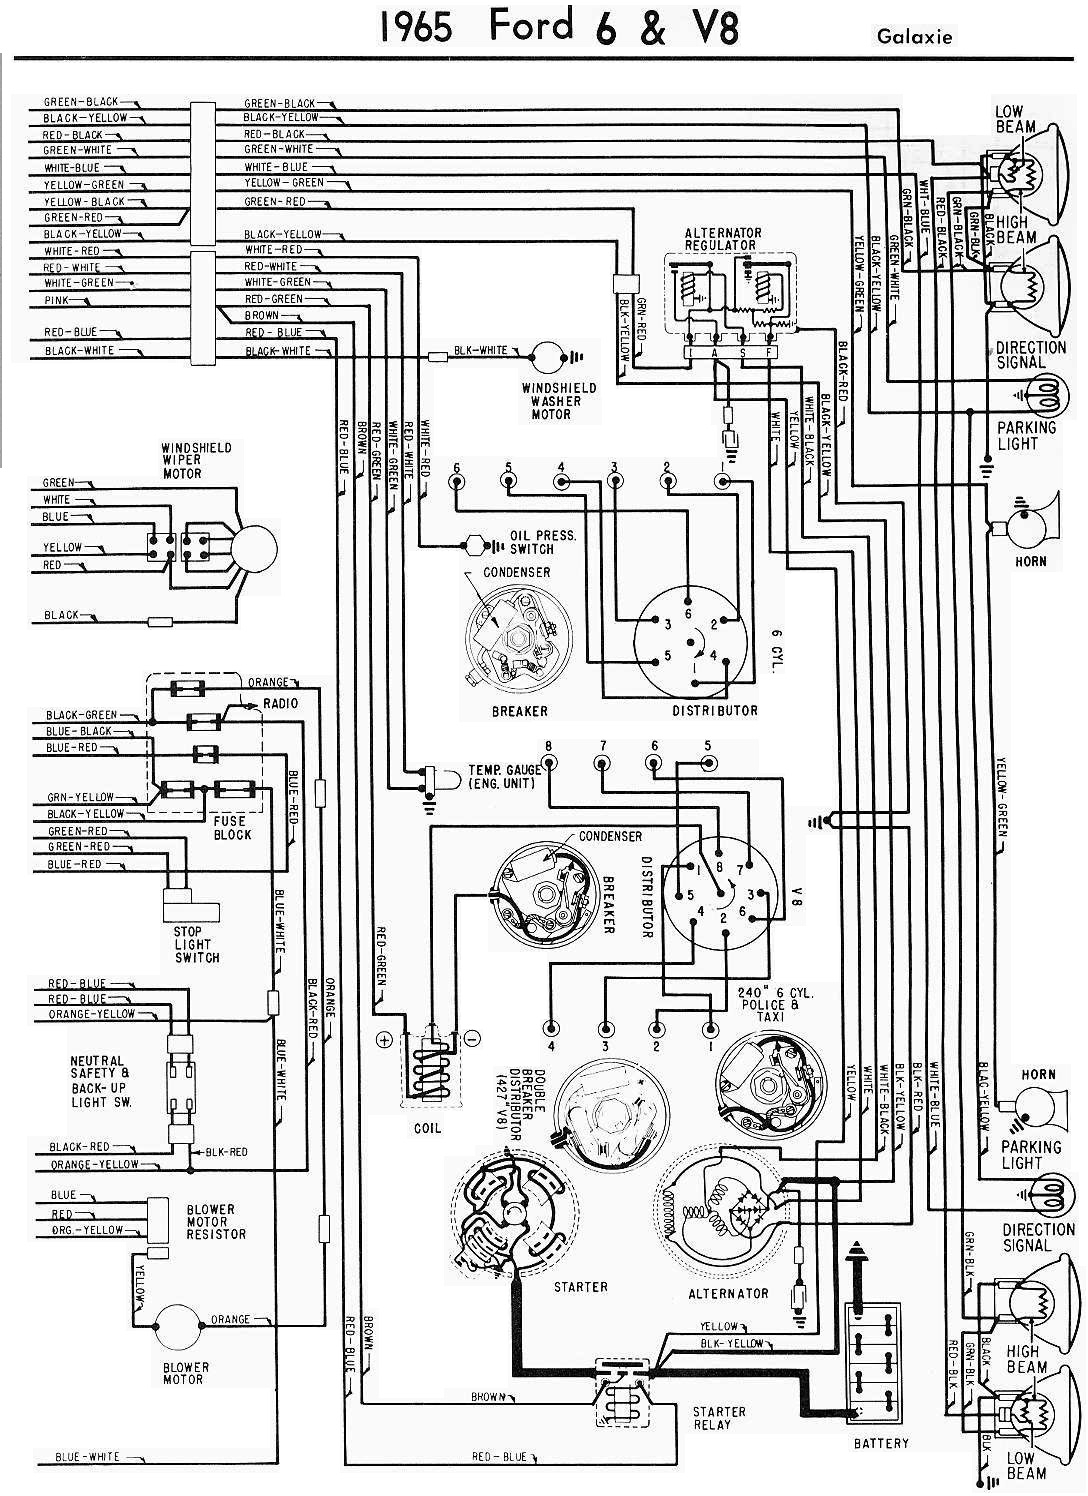 1965 Ford Galaxie Complete Electrical Wiring Diagram Part 2